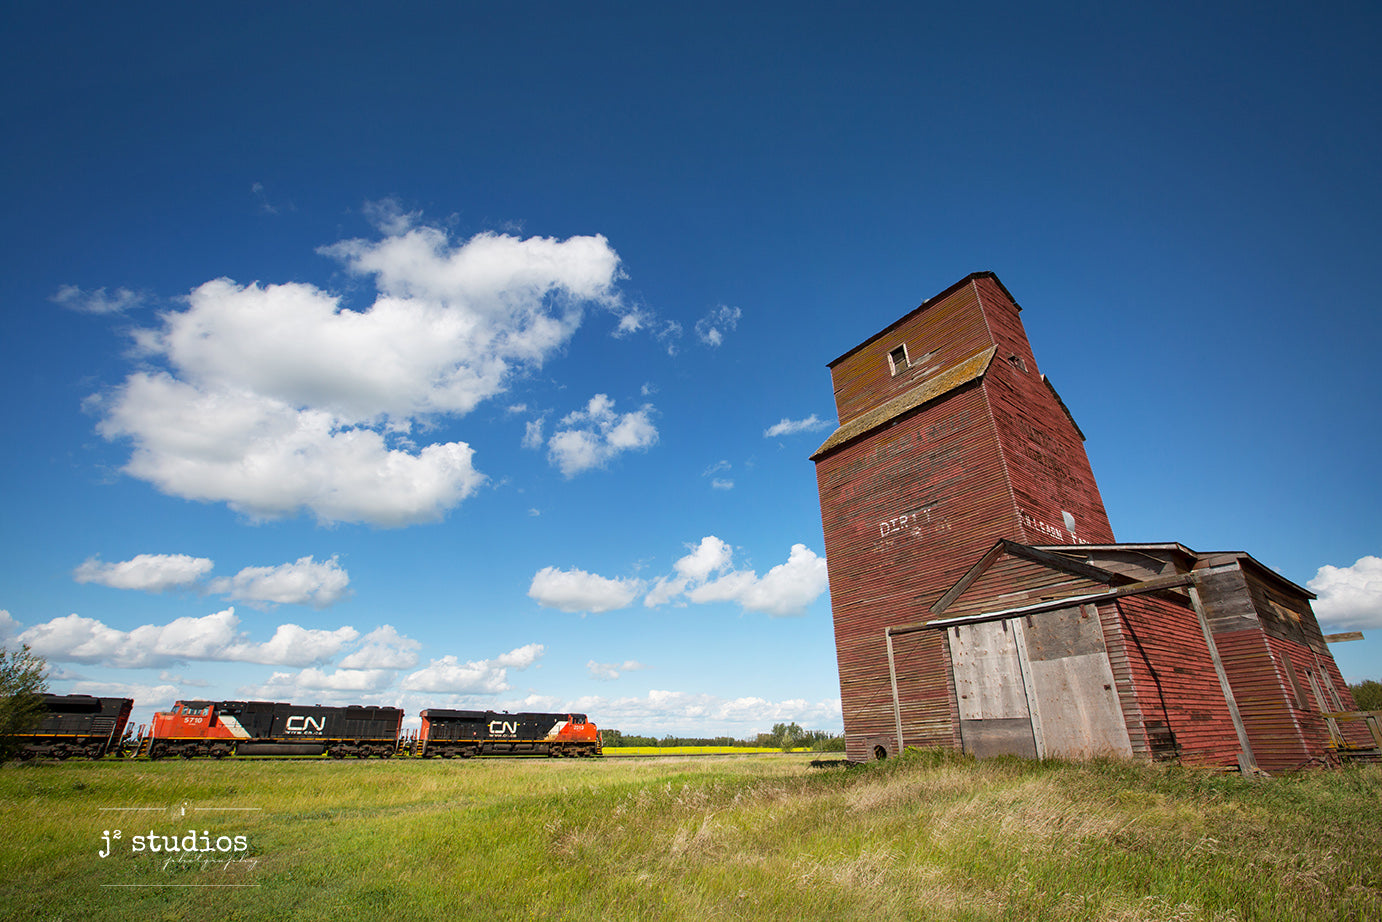 Picture a CN freight train passing Dirty Shorts grain elevator in Shonts, Alberta. Canola field in background. Alberta photography by Larry Jang.